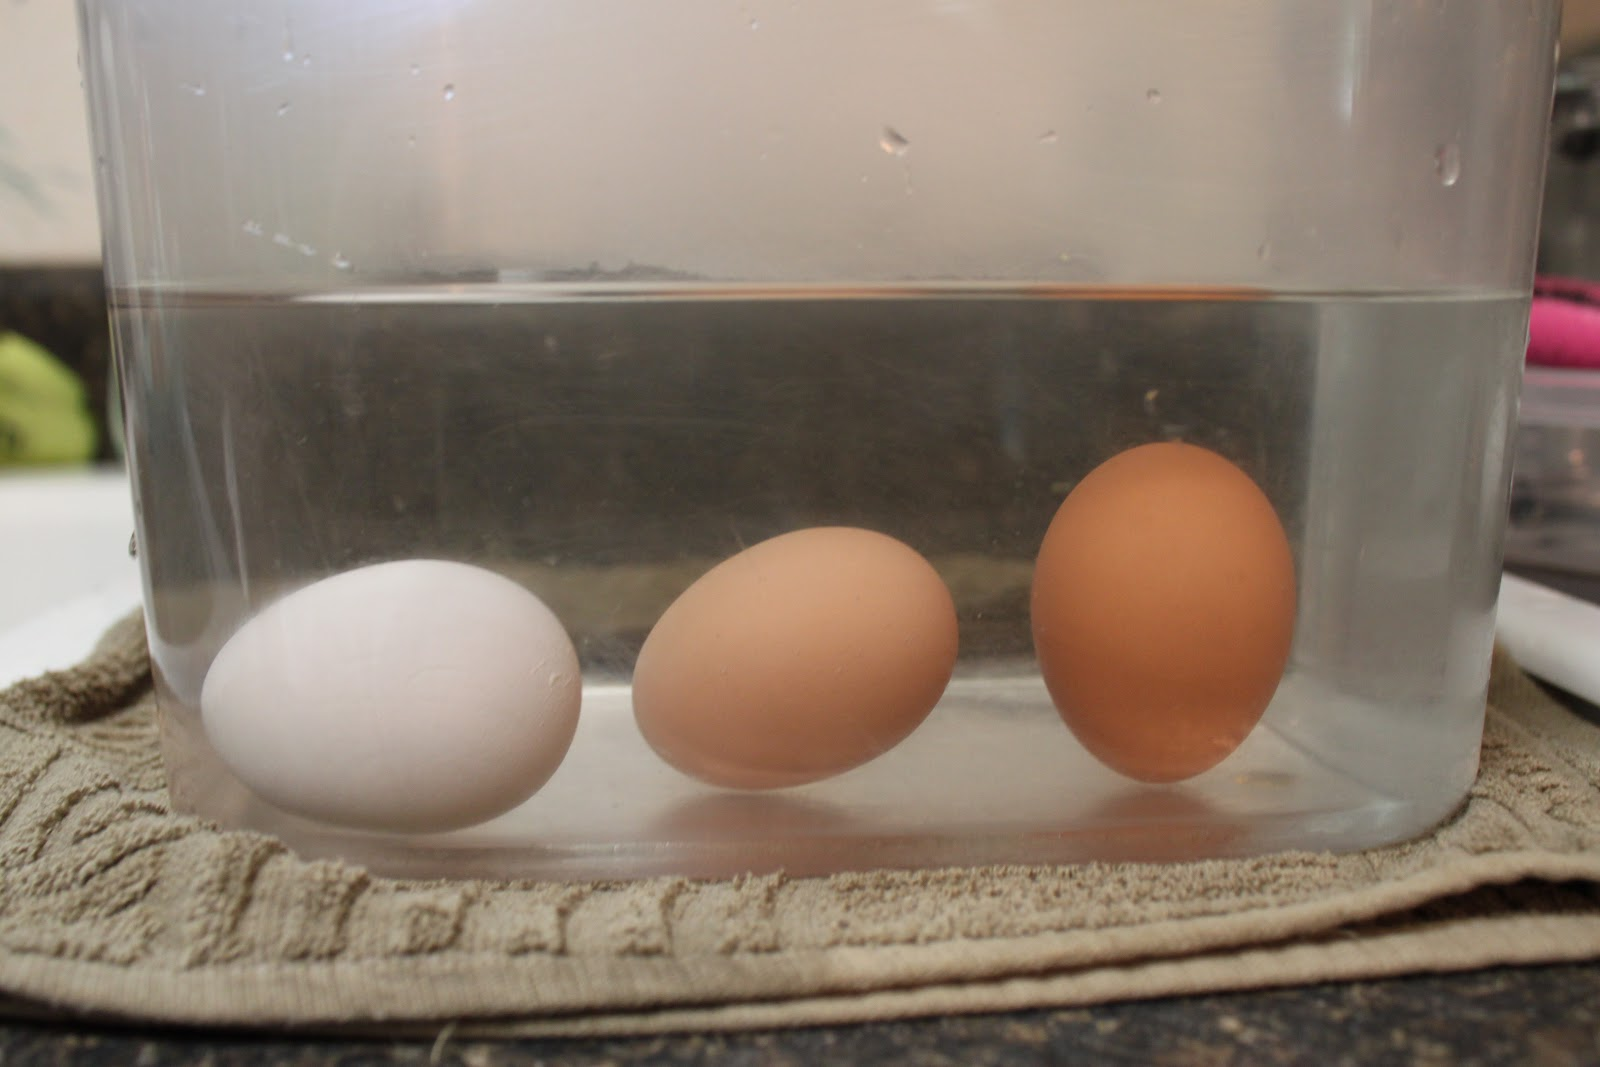 How to know if an egg is fresh or stale? - Number Of Things